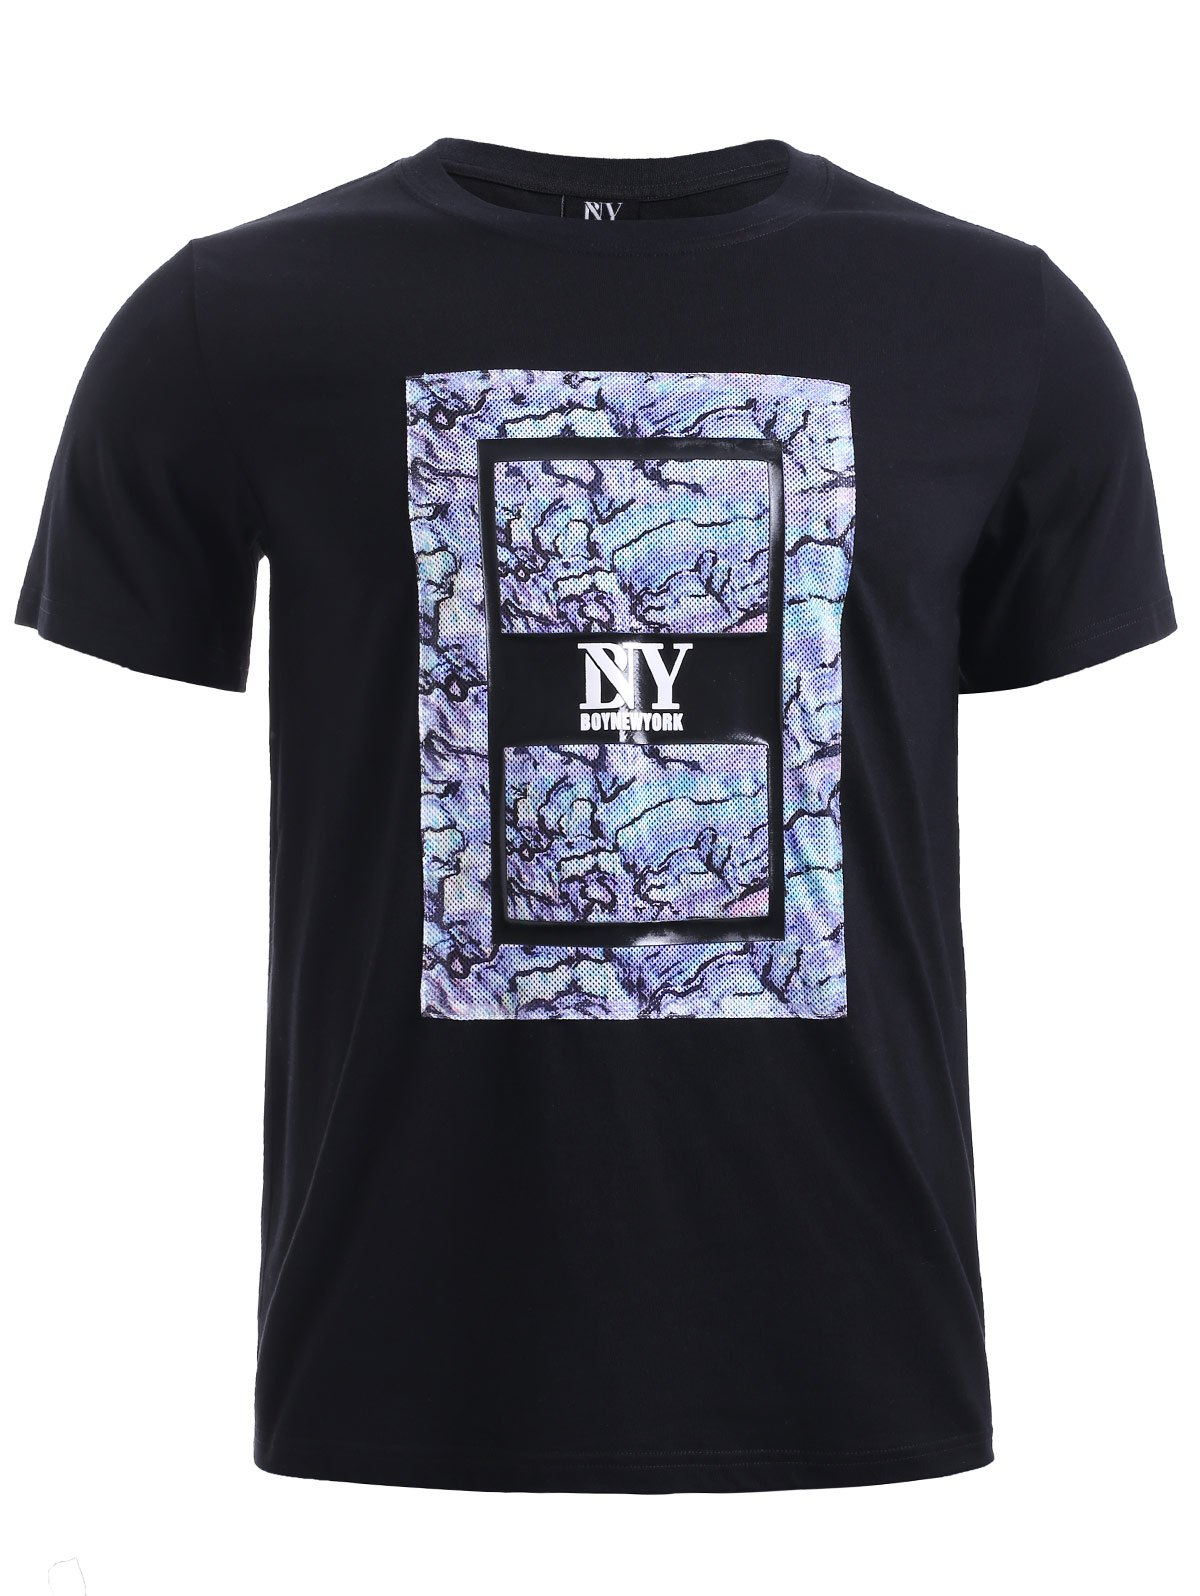 BoyNewYork Camo PU Leather Applique T-Shirt - BLACK XL